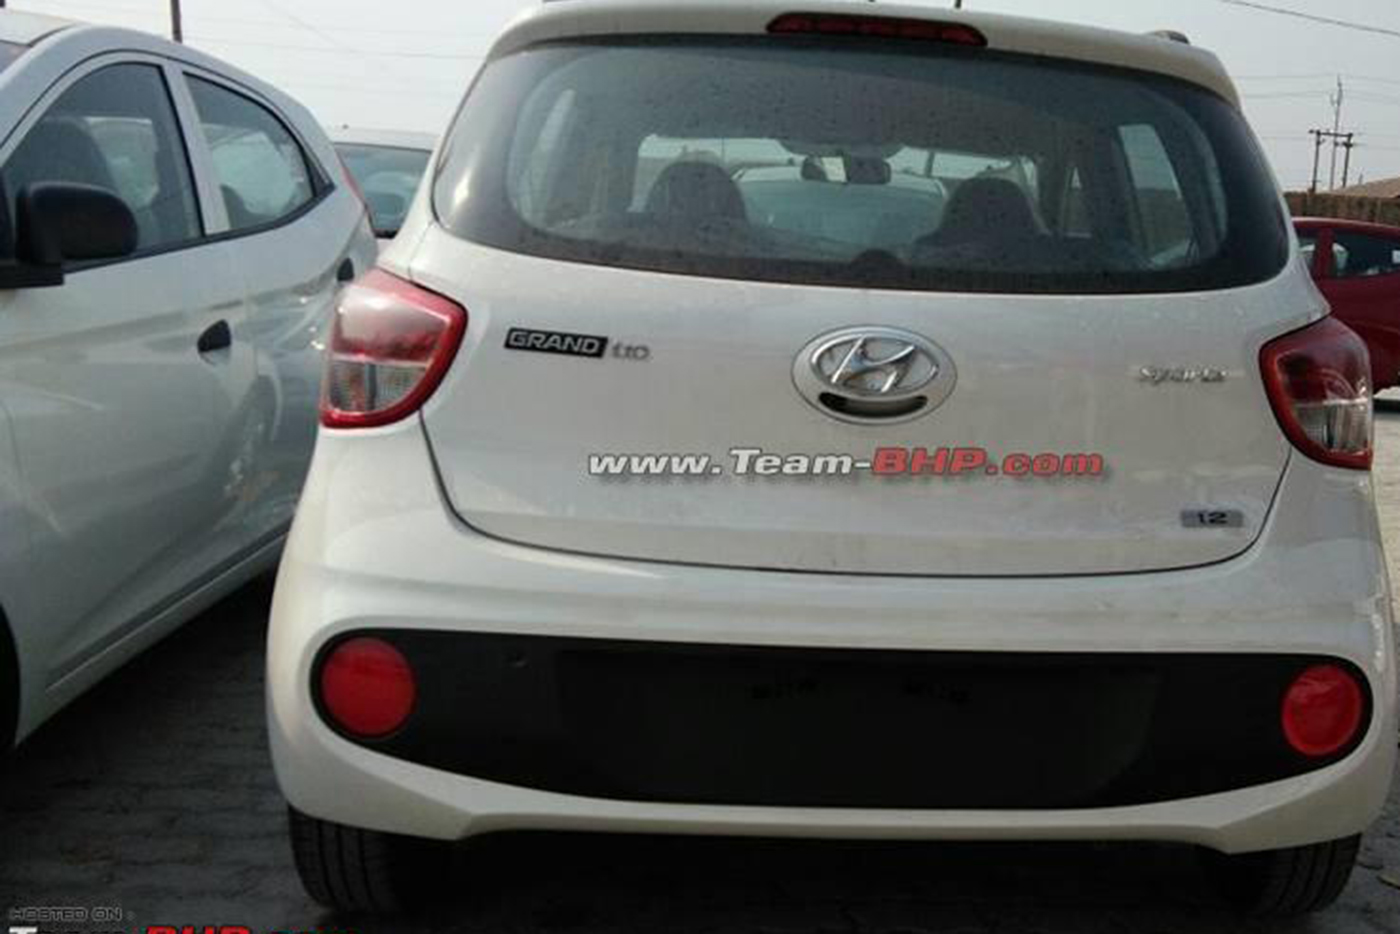 2017-hyundai-grand-i10-rear-reaches-dealer.jpg